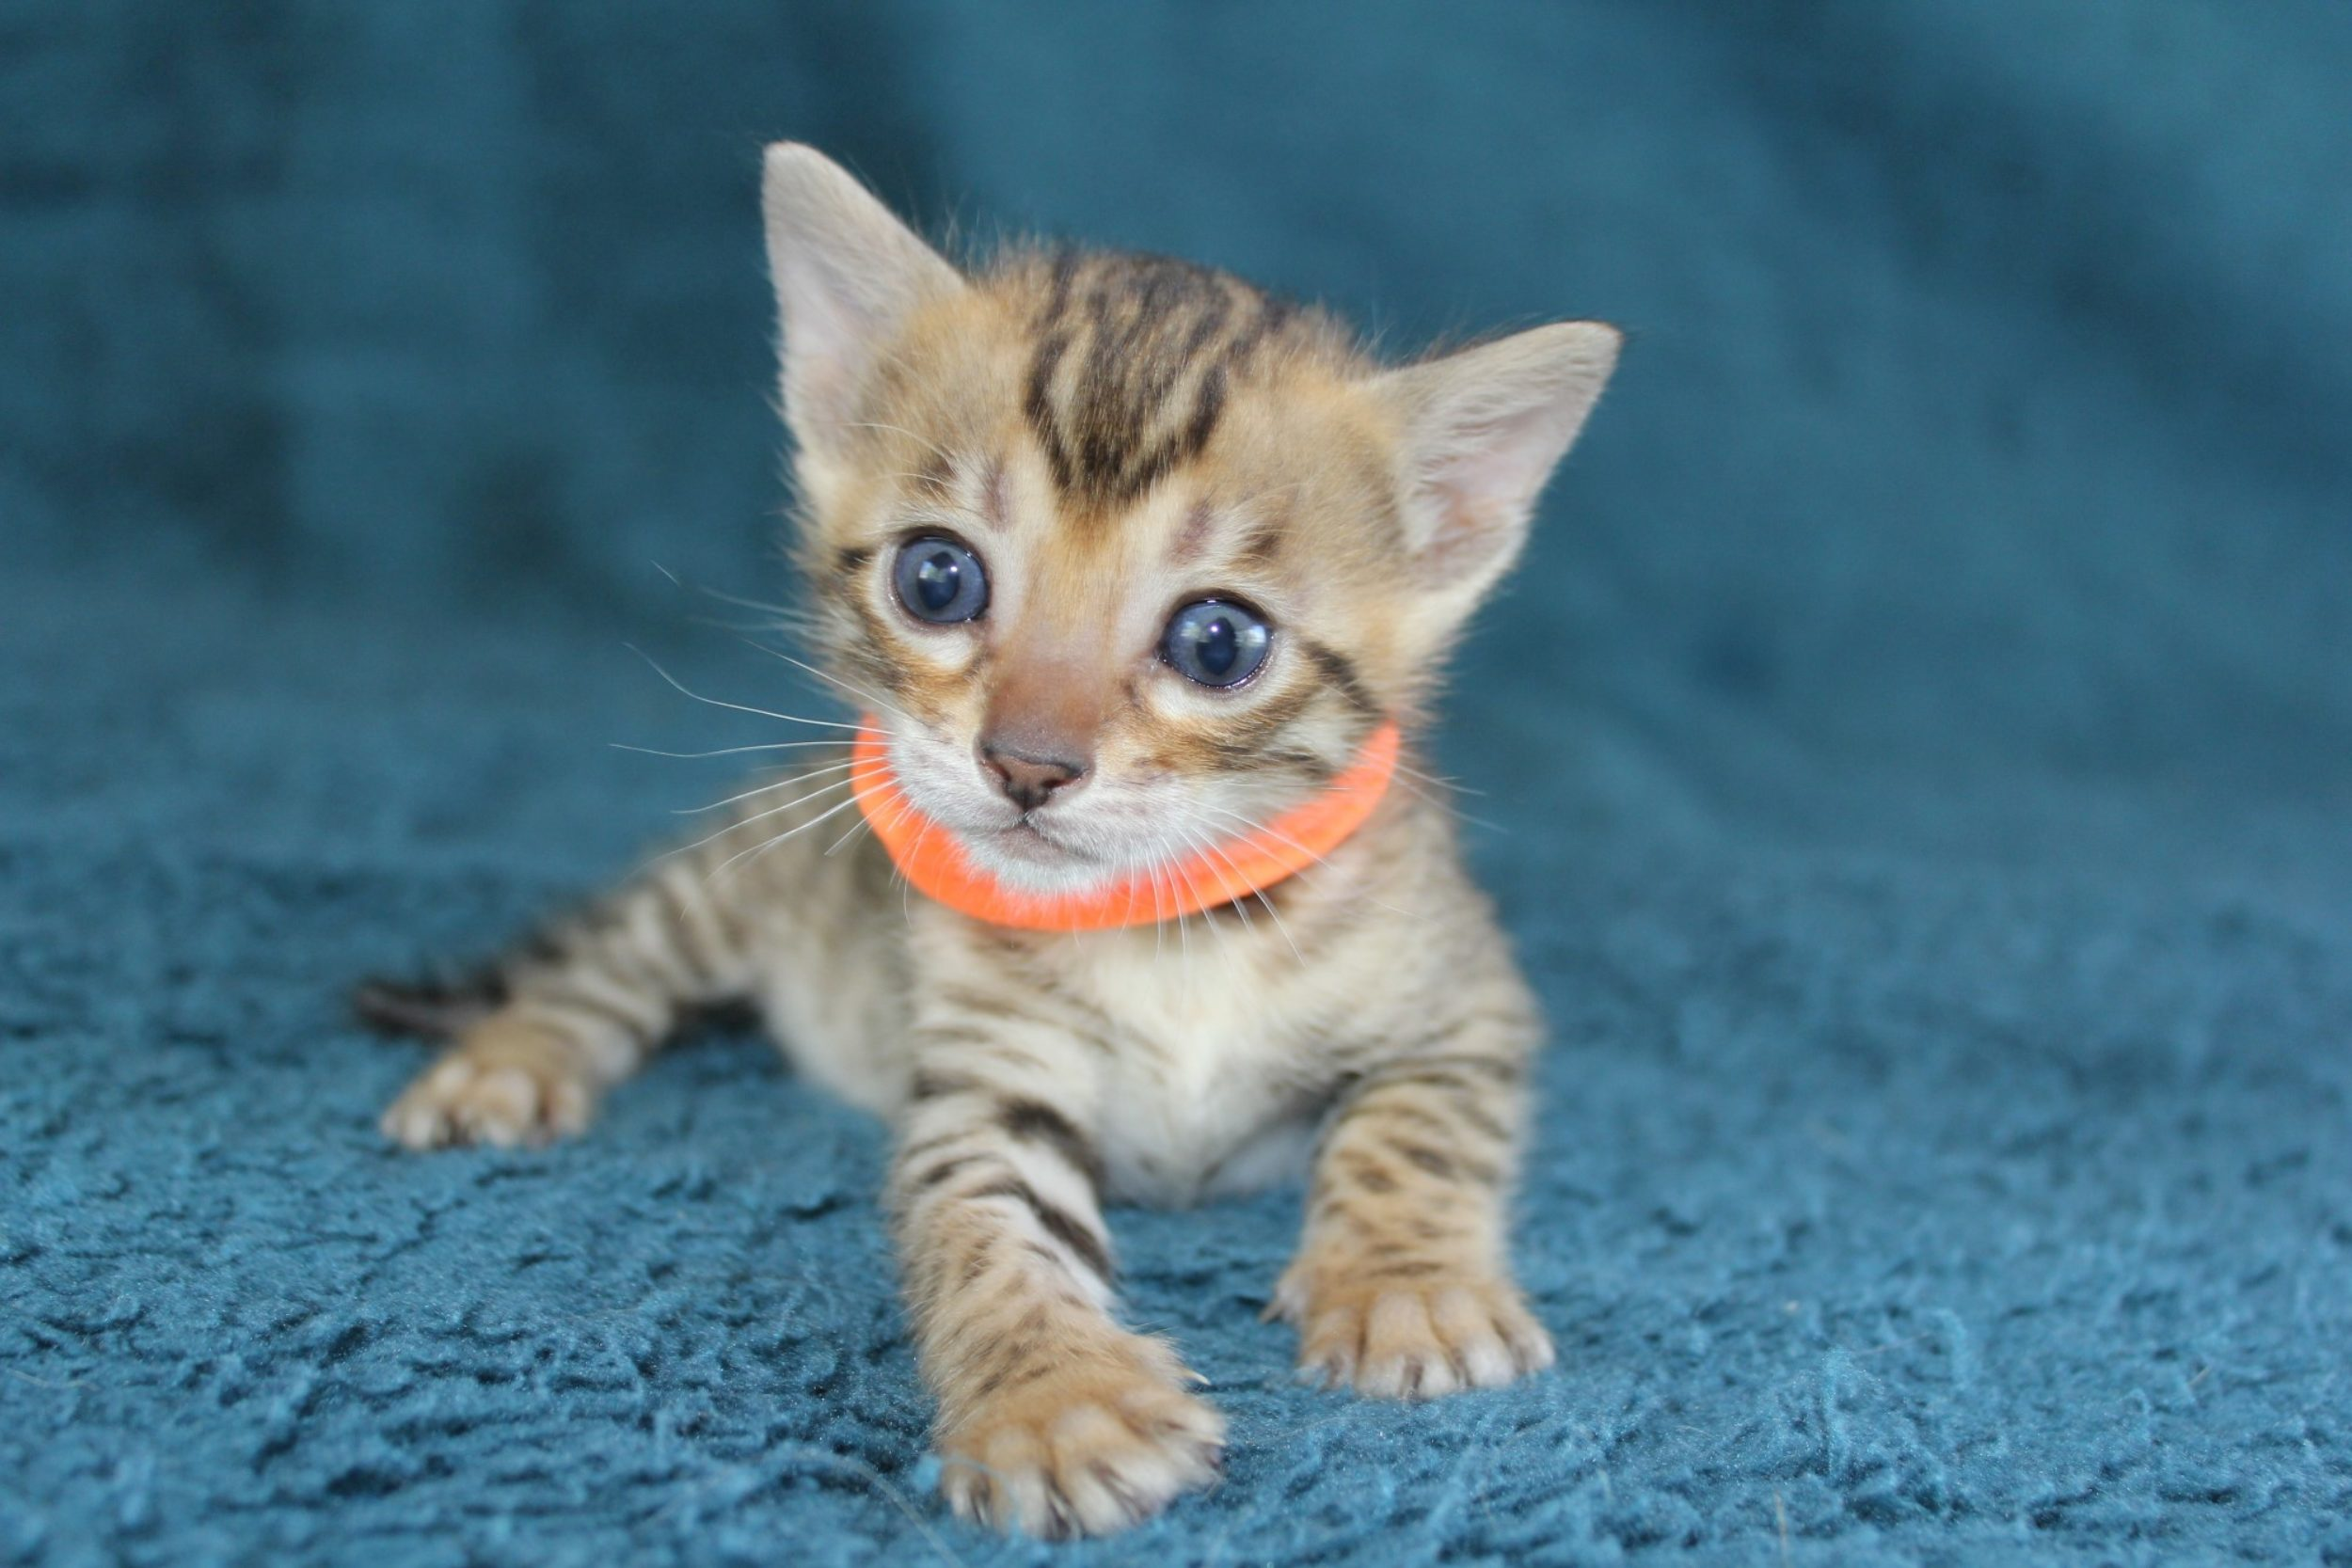 Photo 1 of Grace  the Bengal kitten.